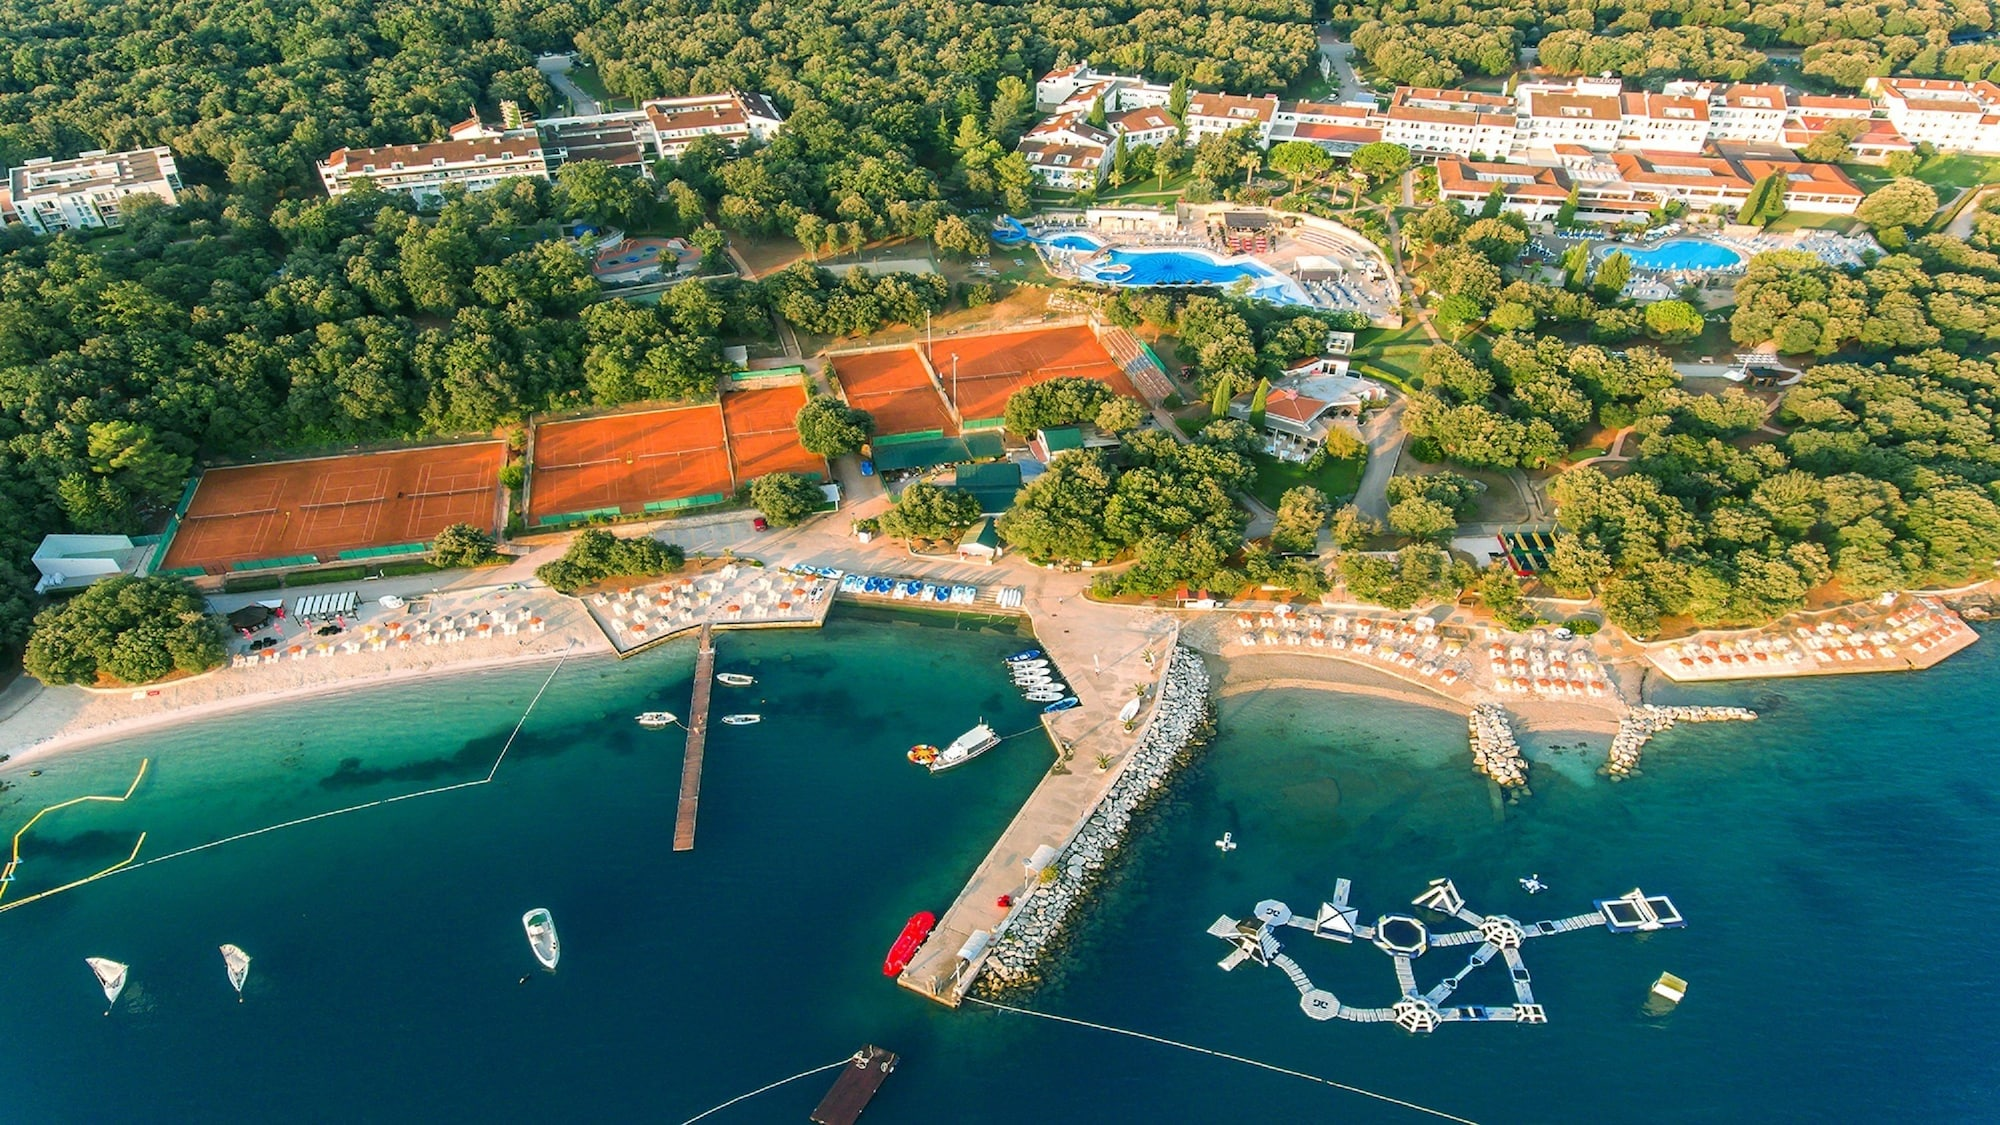 Valamar Tamaris Resort, Poreč